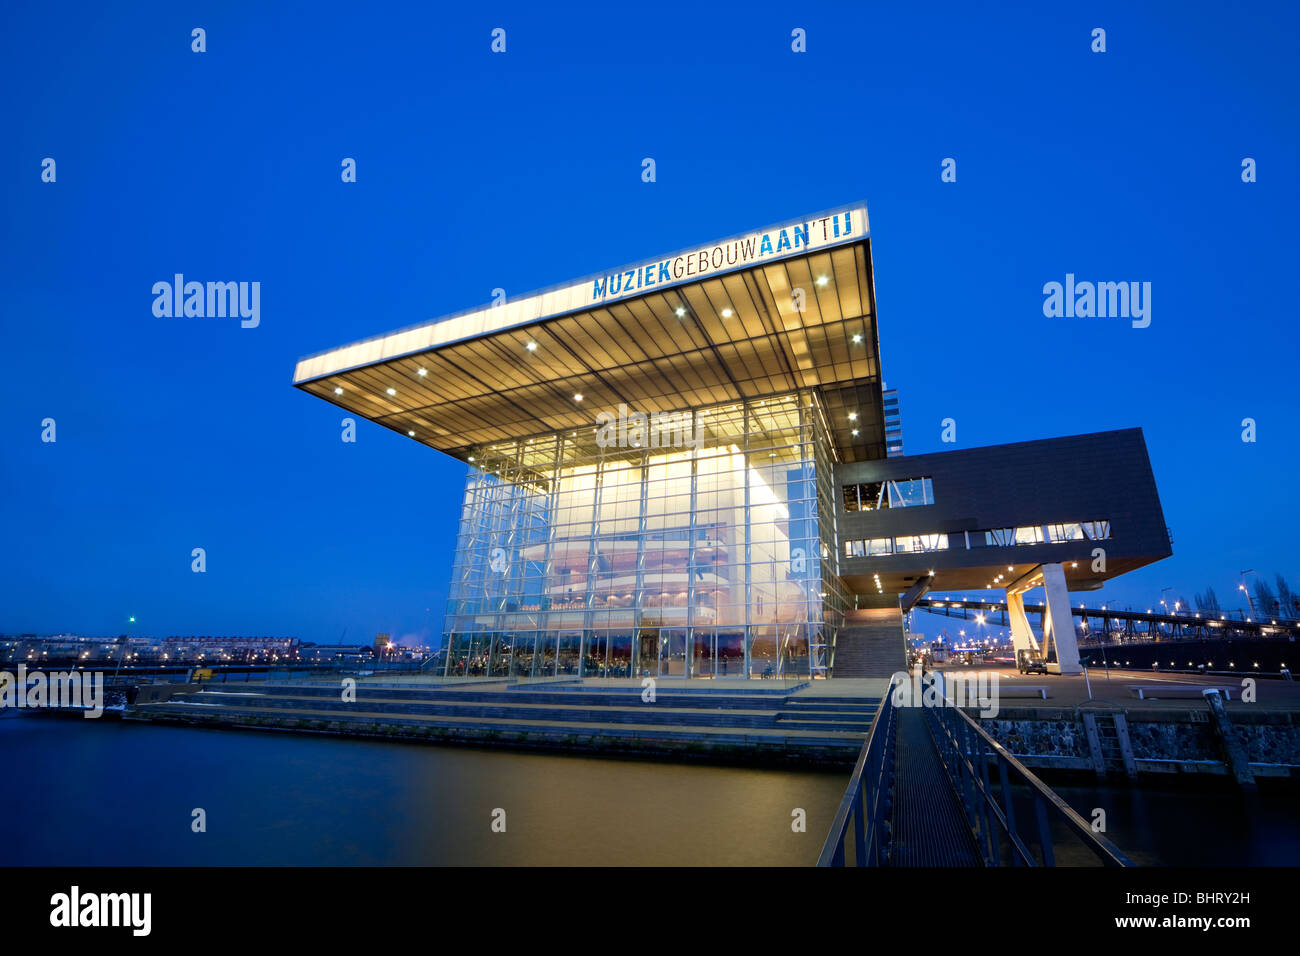 Amsterdam Muziekgebouw aan 't IJ, Music Building at the IJ, the BIMhuis and the Star Ferry Restaurant at dusk. - Stock Image